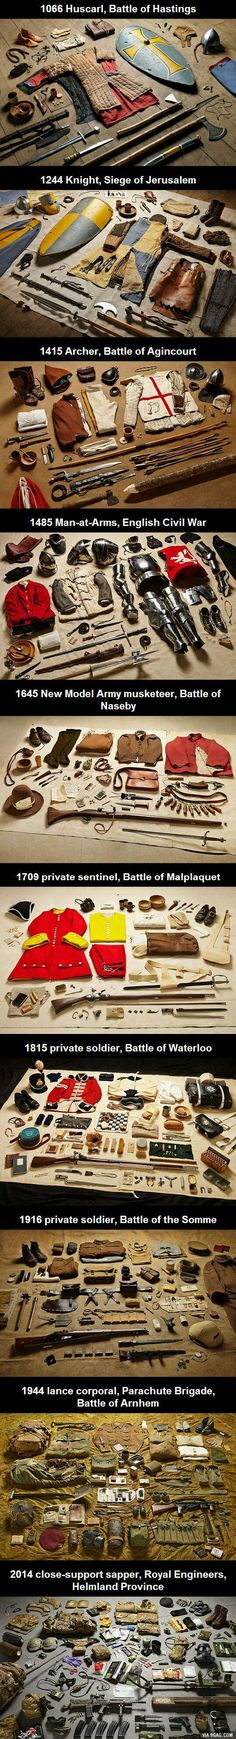 Military uniforms from the last 1000 years.